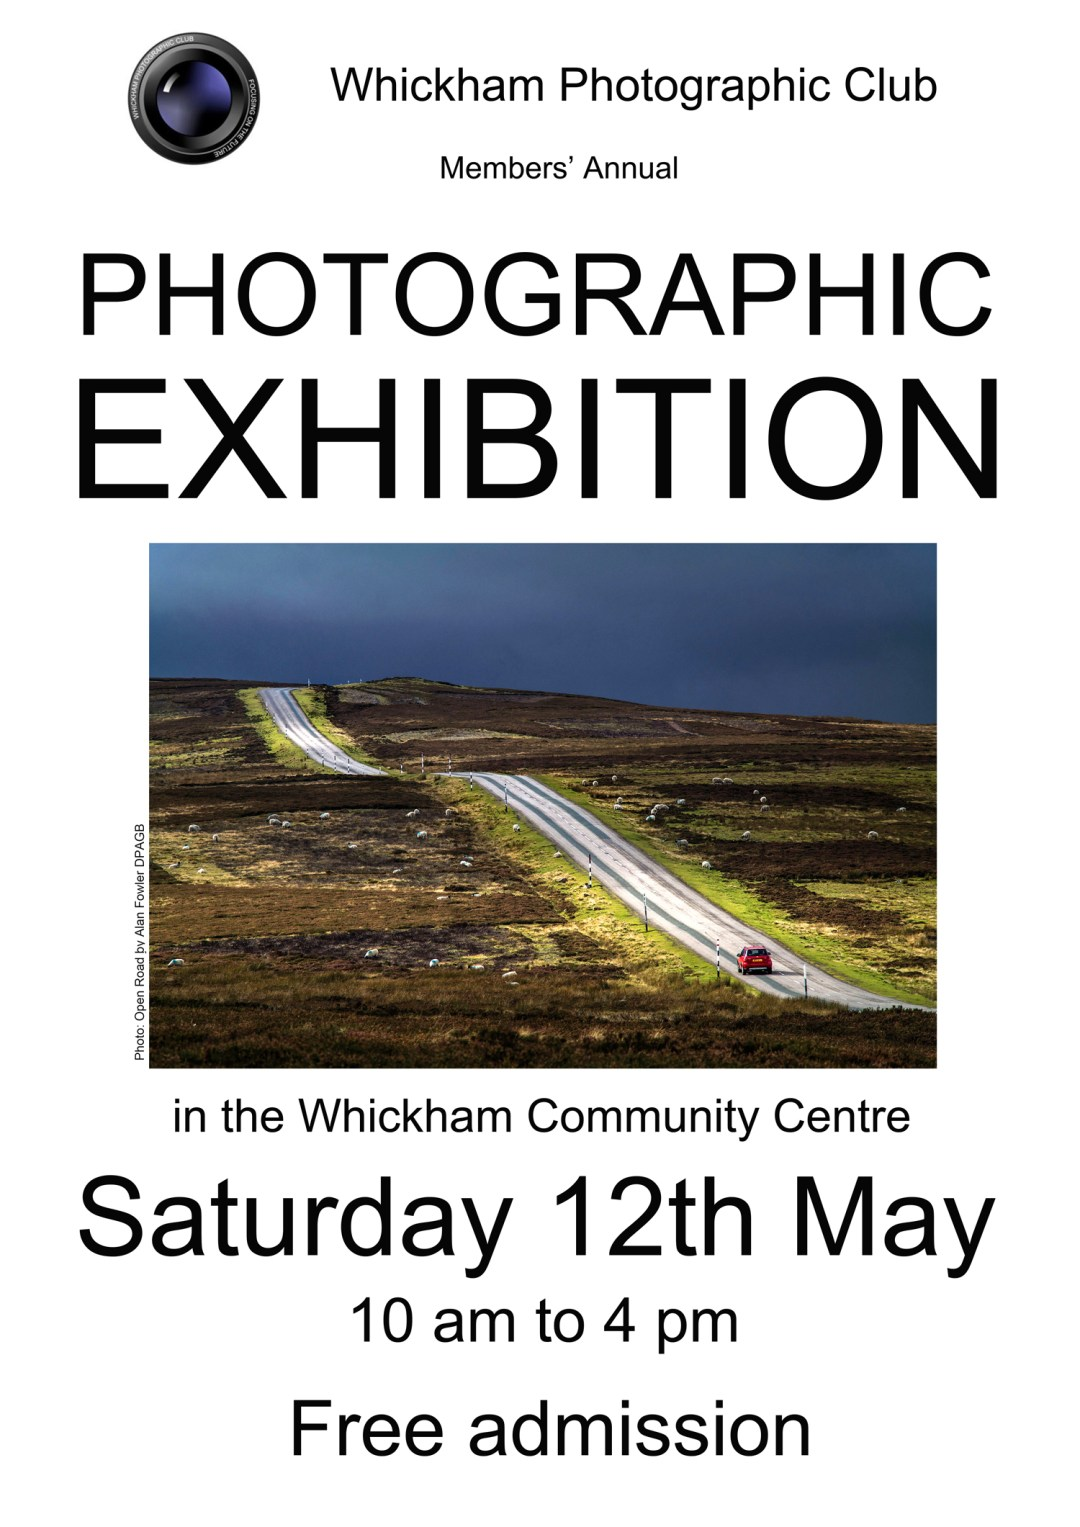 Whickham Photographic Exhibition 2018